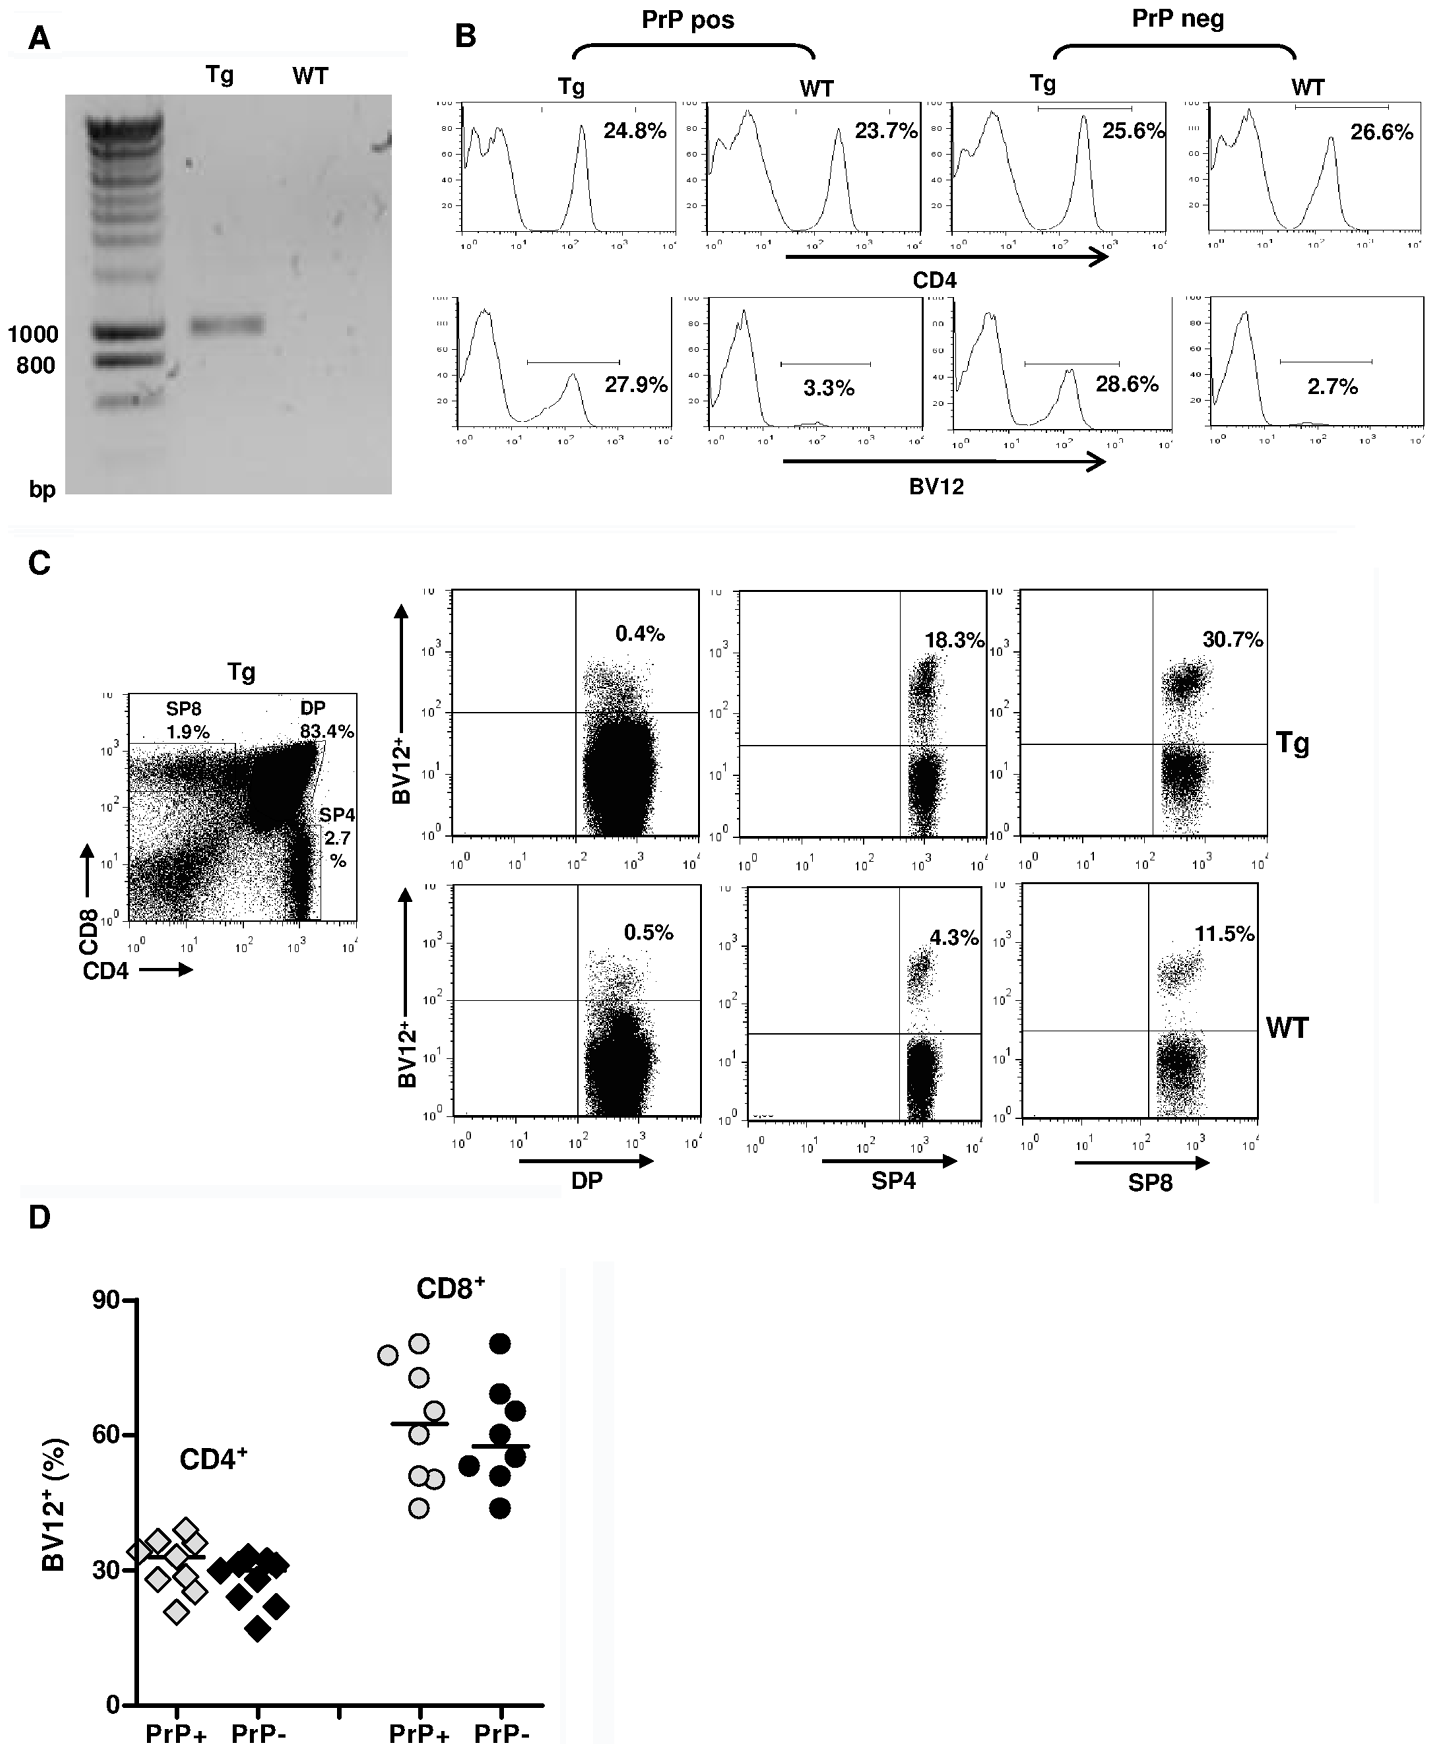 Expression of the TCR β-chain transgene in PrP+ and PrP– mice.